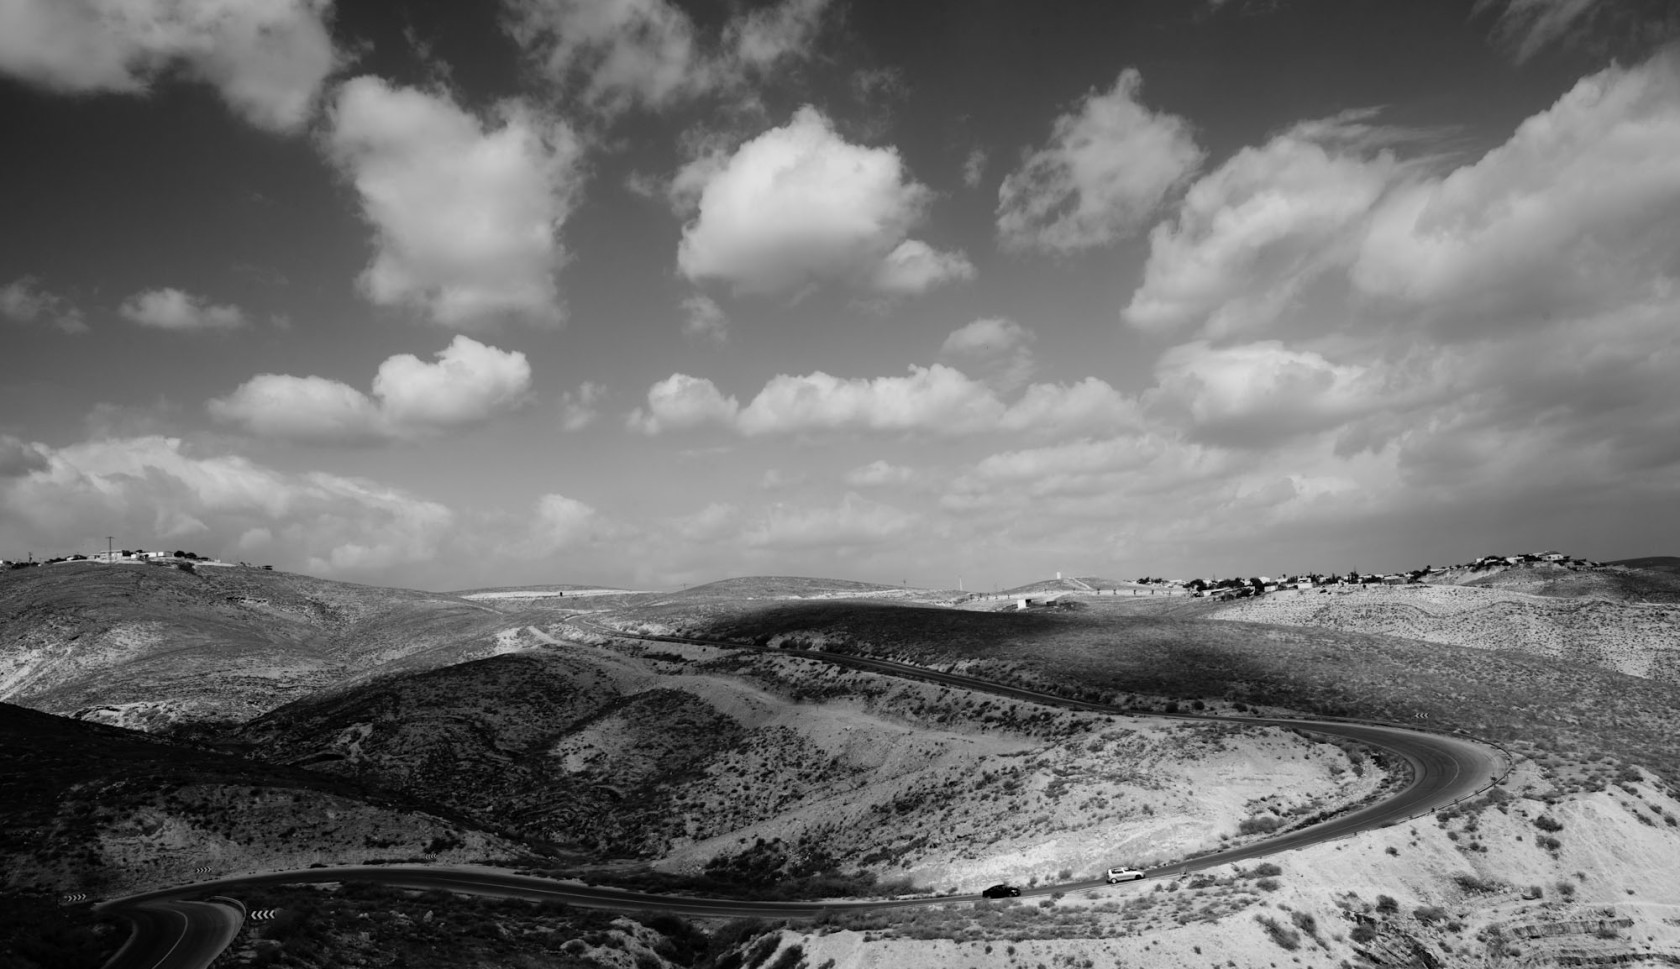 monochromatic nature, Jerusalem, dead sea area - Victor bezrukov